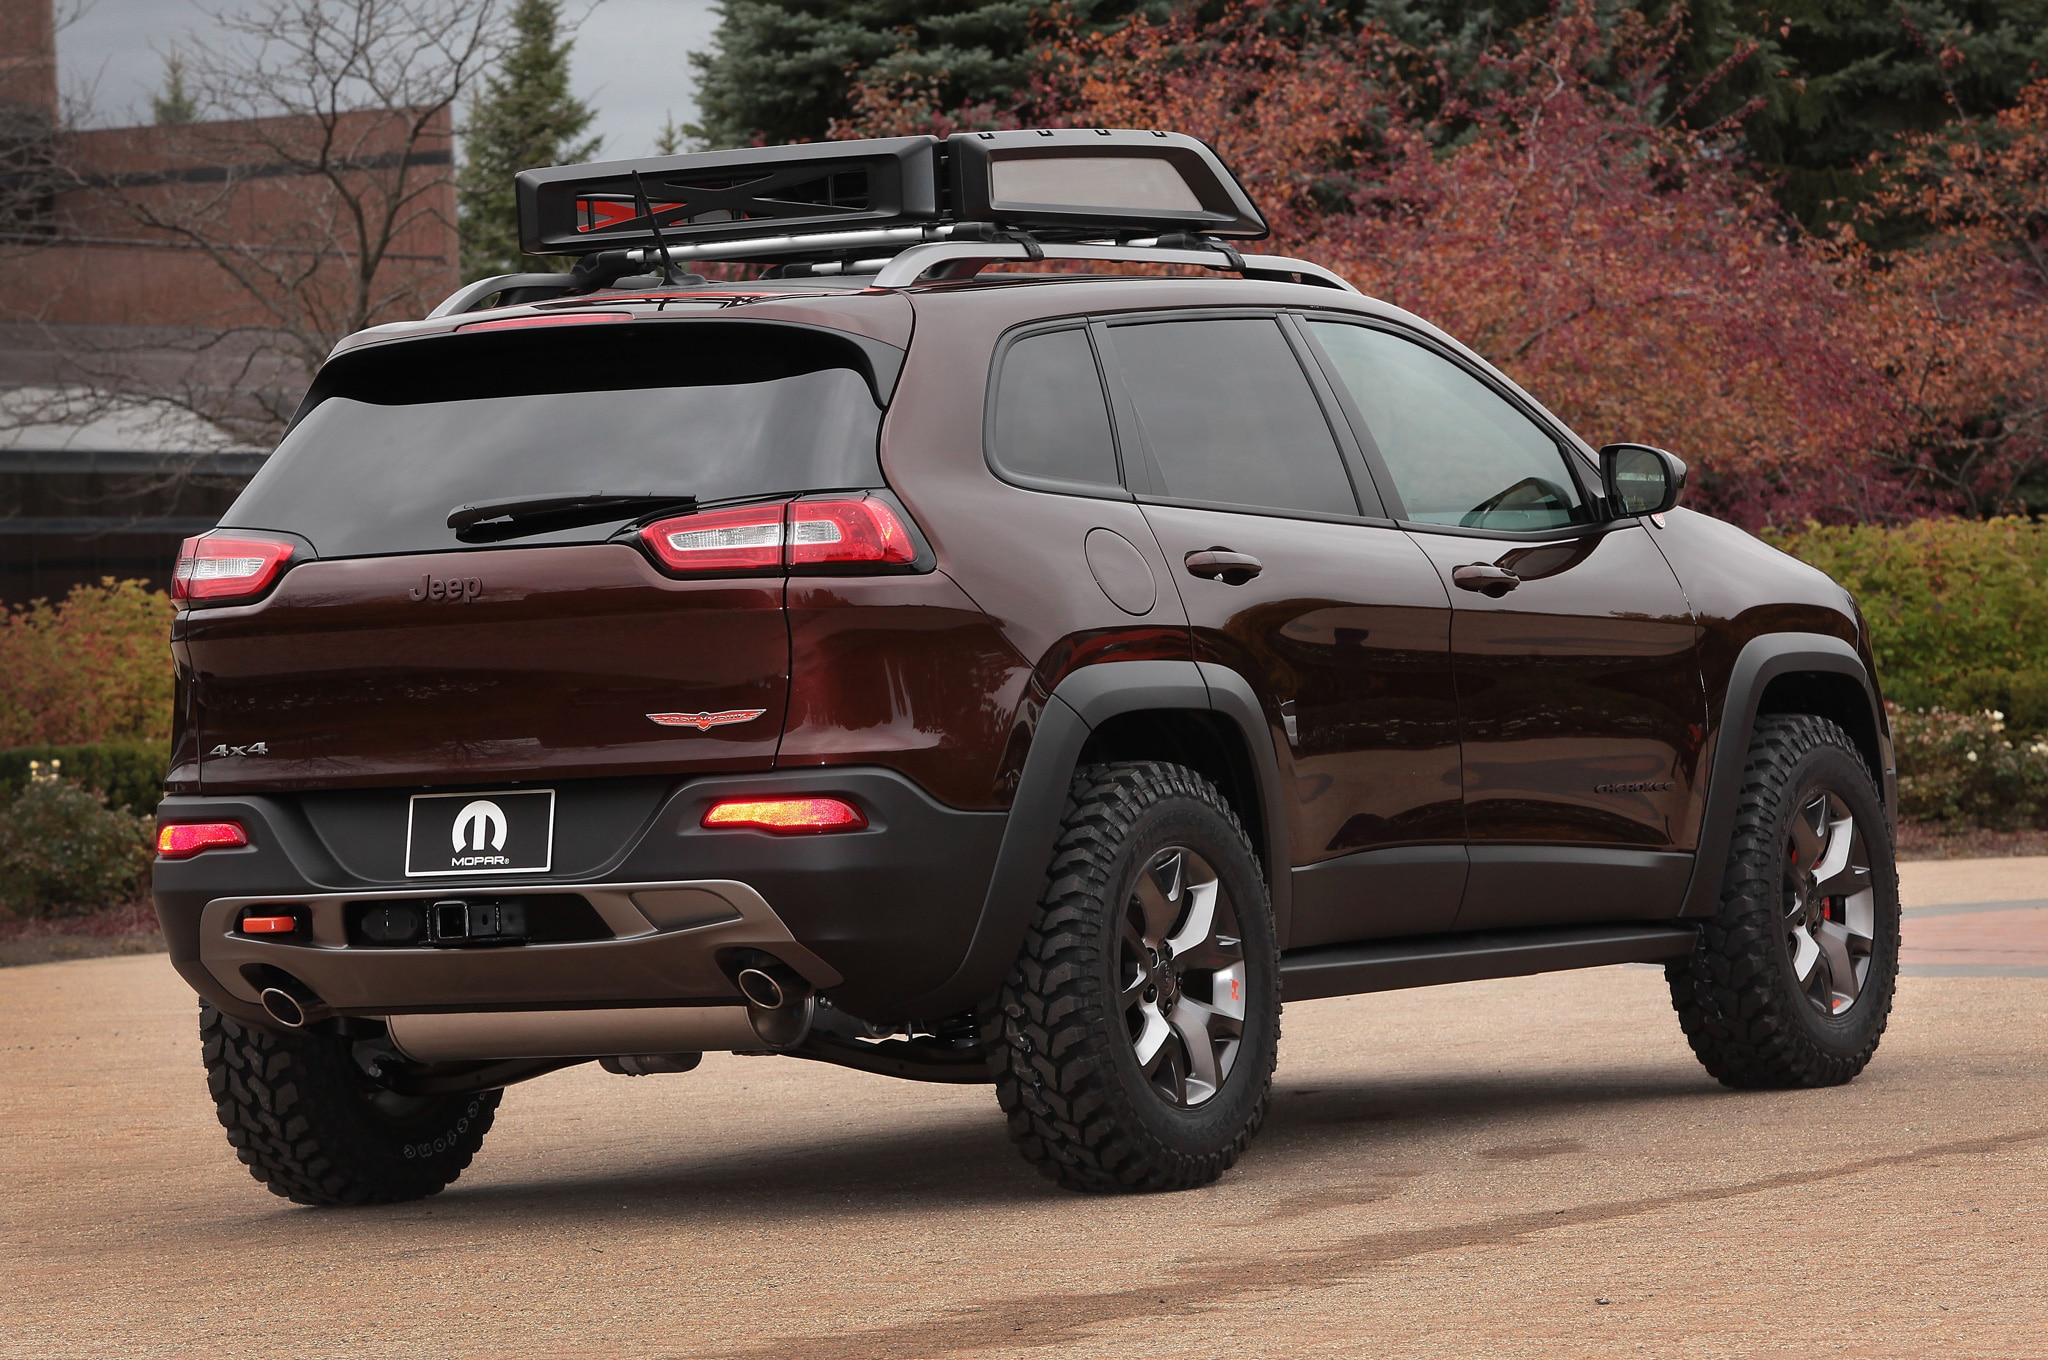 chrysler unveils 2014 jeep cherokee ram sun chaser sema concepts. Black Bedroom Furniture Sets. Home Design Ideas